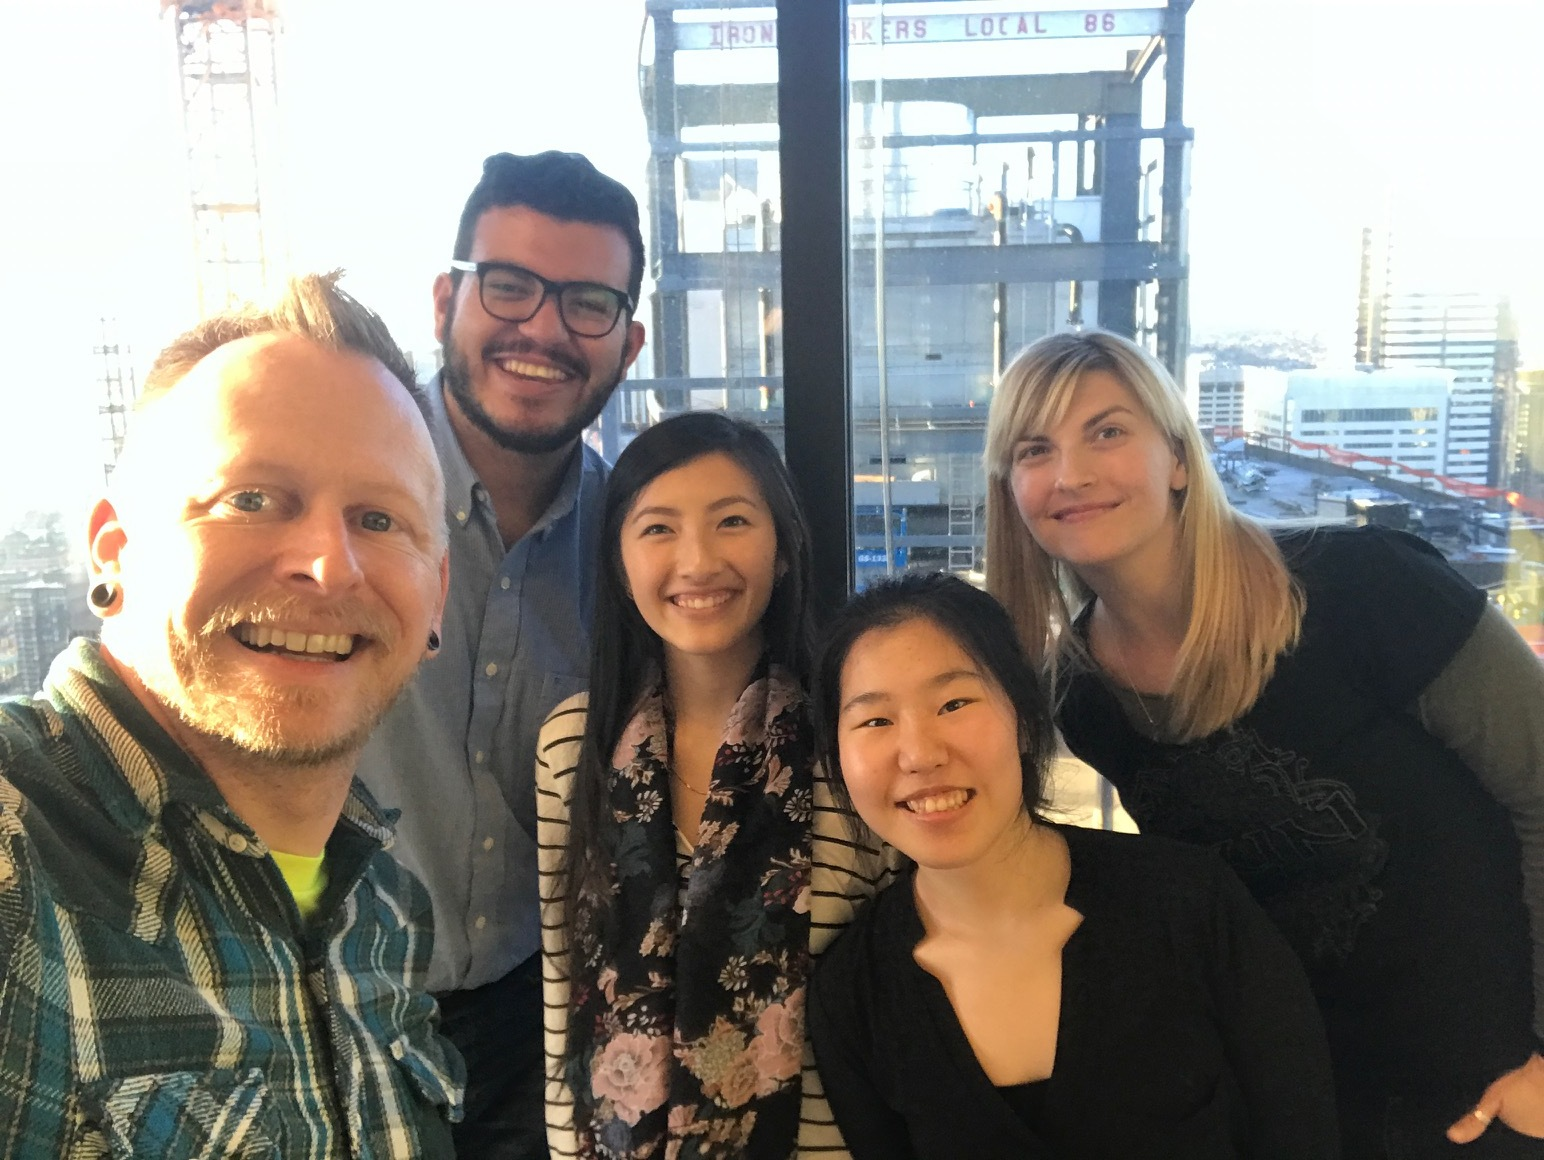 With Microsoft Outlook Design Research team, at Microsoft Insight Studio (Feb 14, 2017, downtown Seattle)